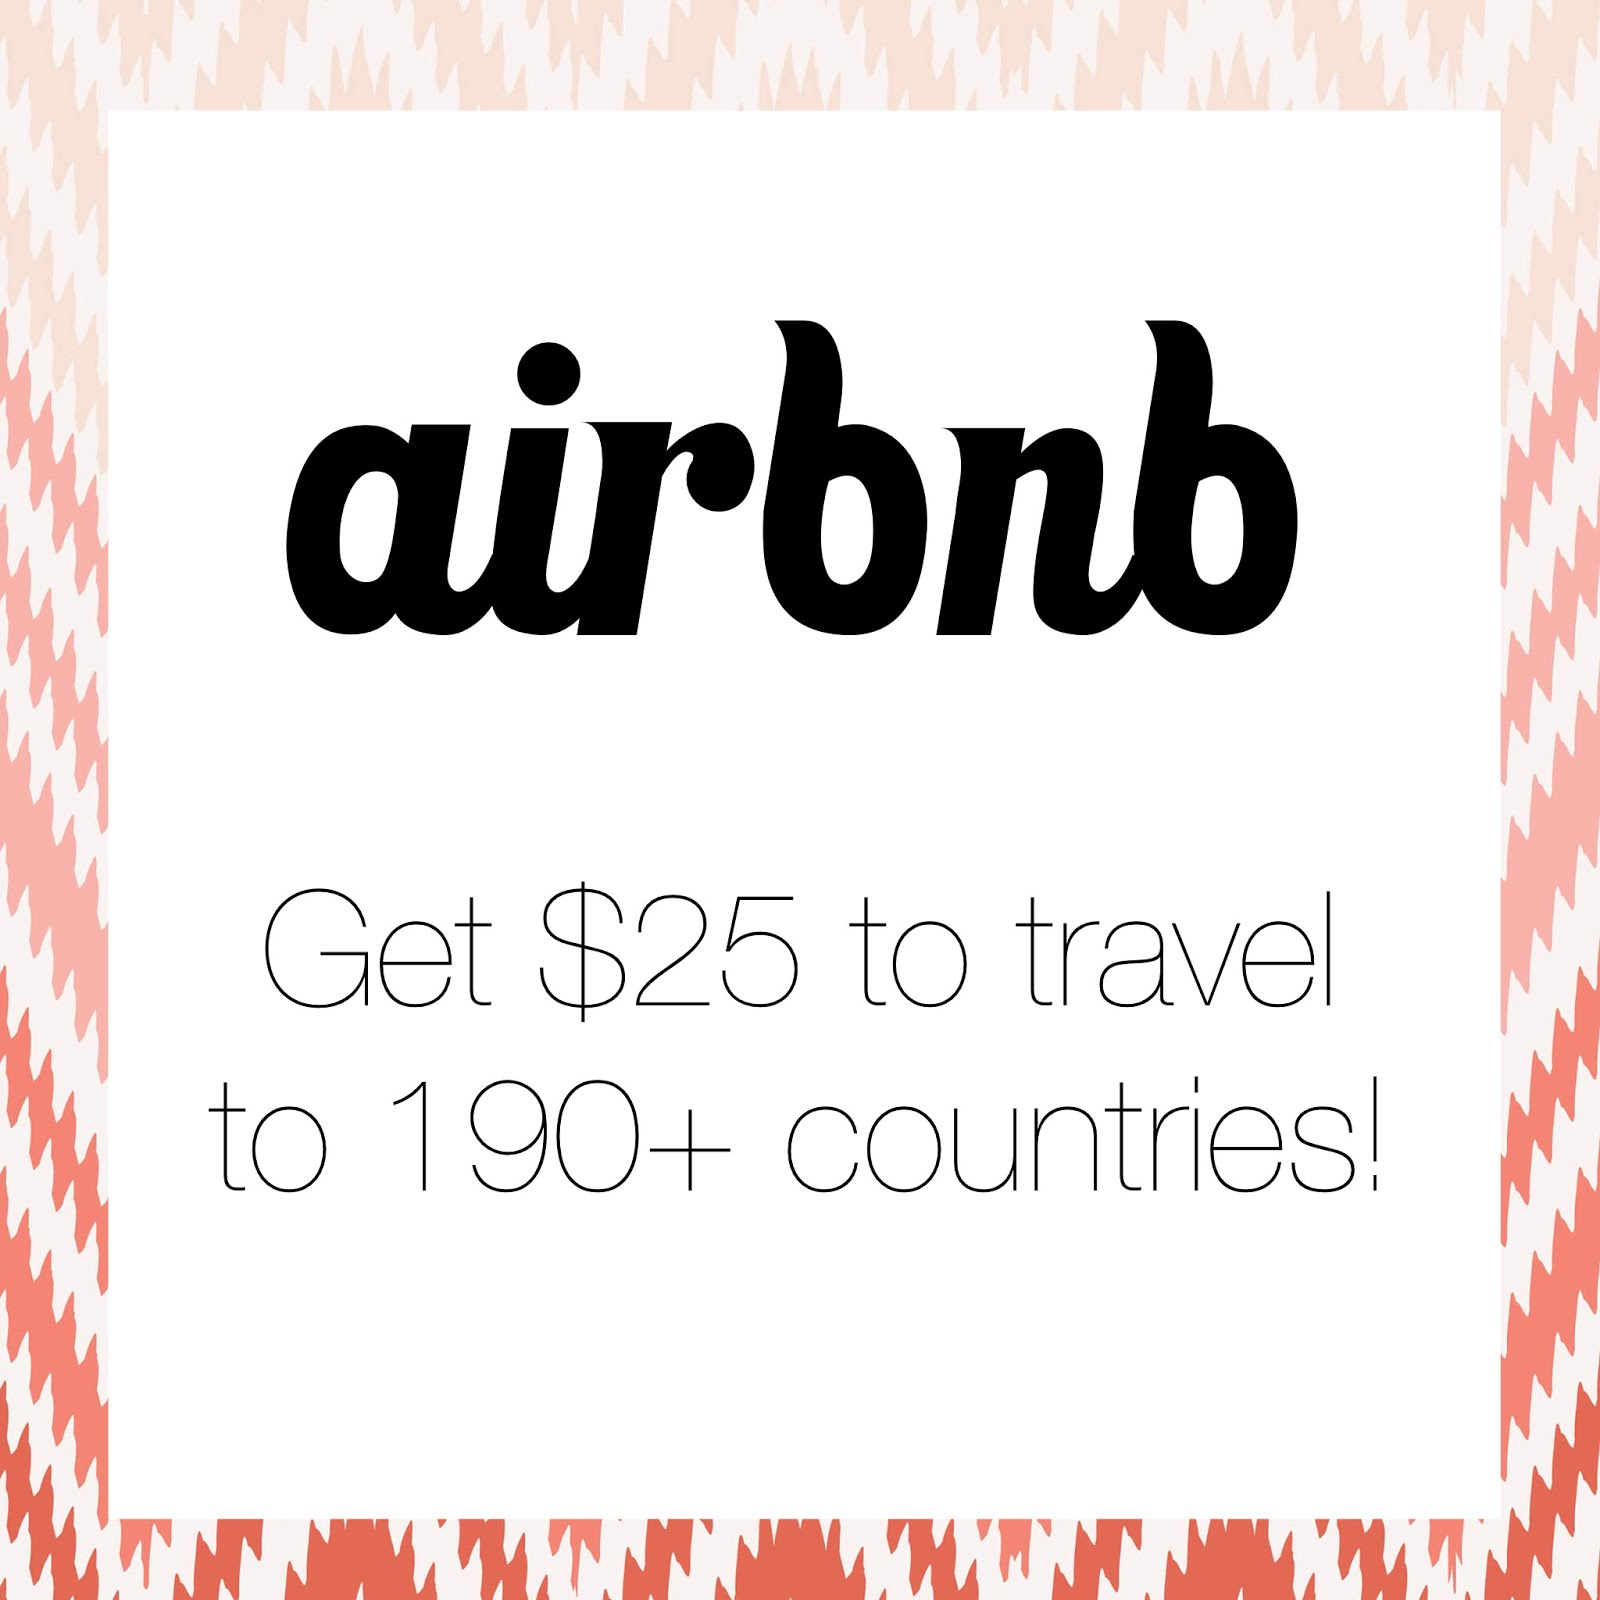 New Customers: Click the box to get $25 credit to airbnb!